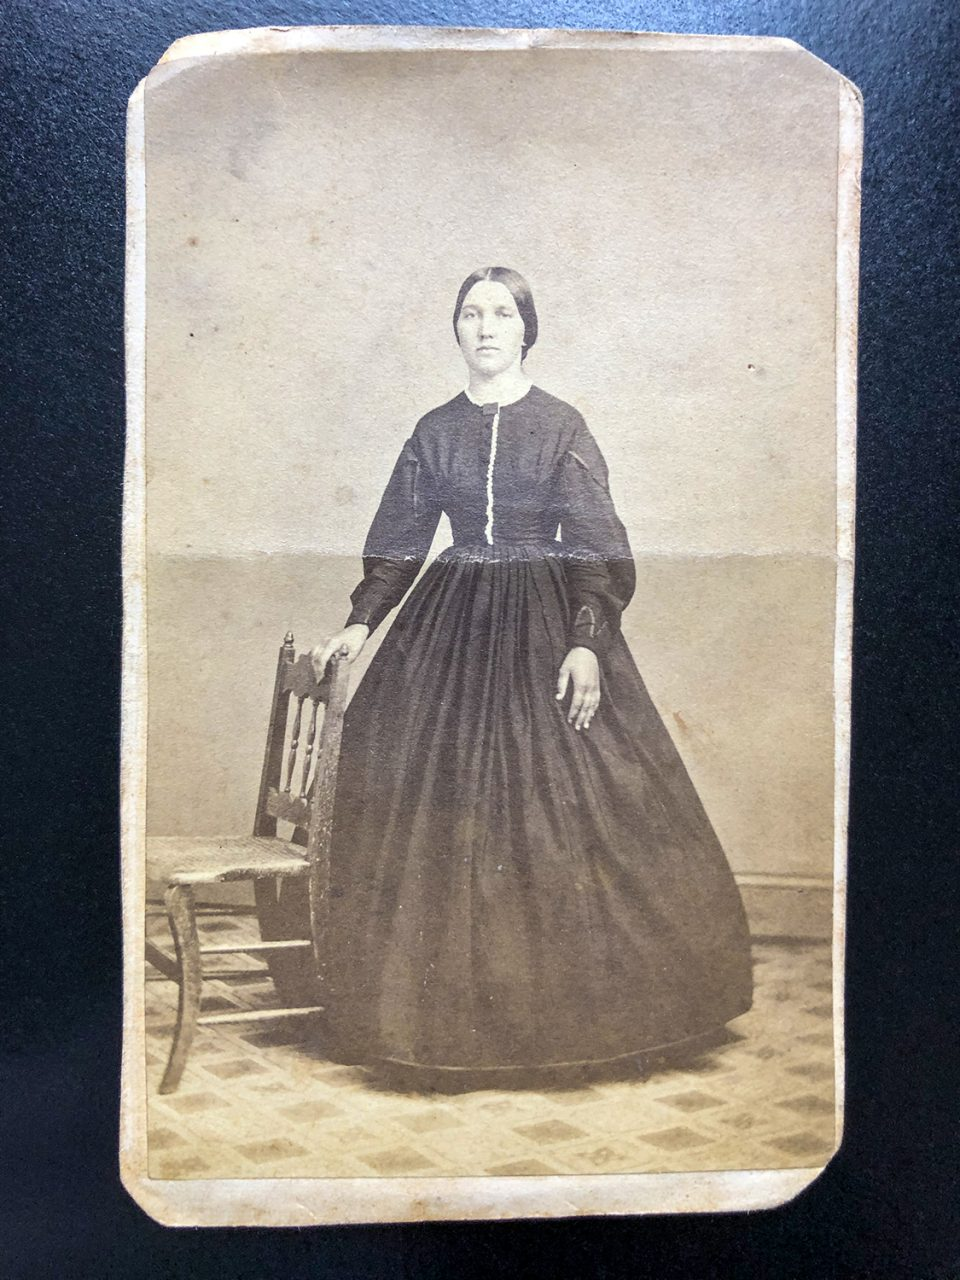 Unidentified woman photographed by the studio of Evans & Prince in York, Pennsylvania between 1864 and 1866. Can you identify her?